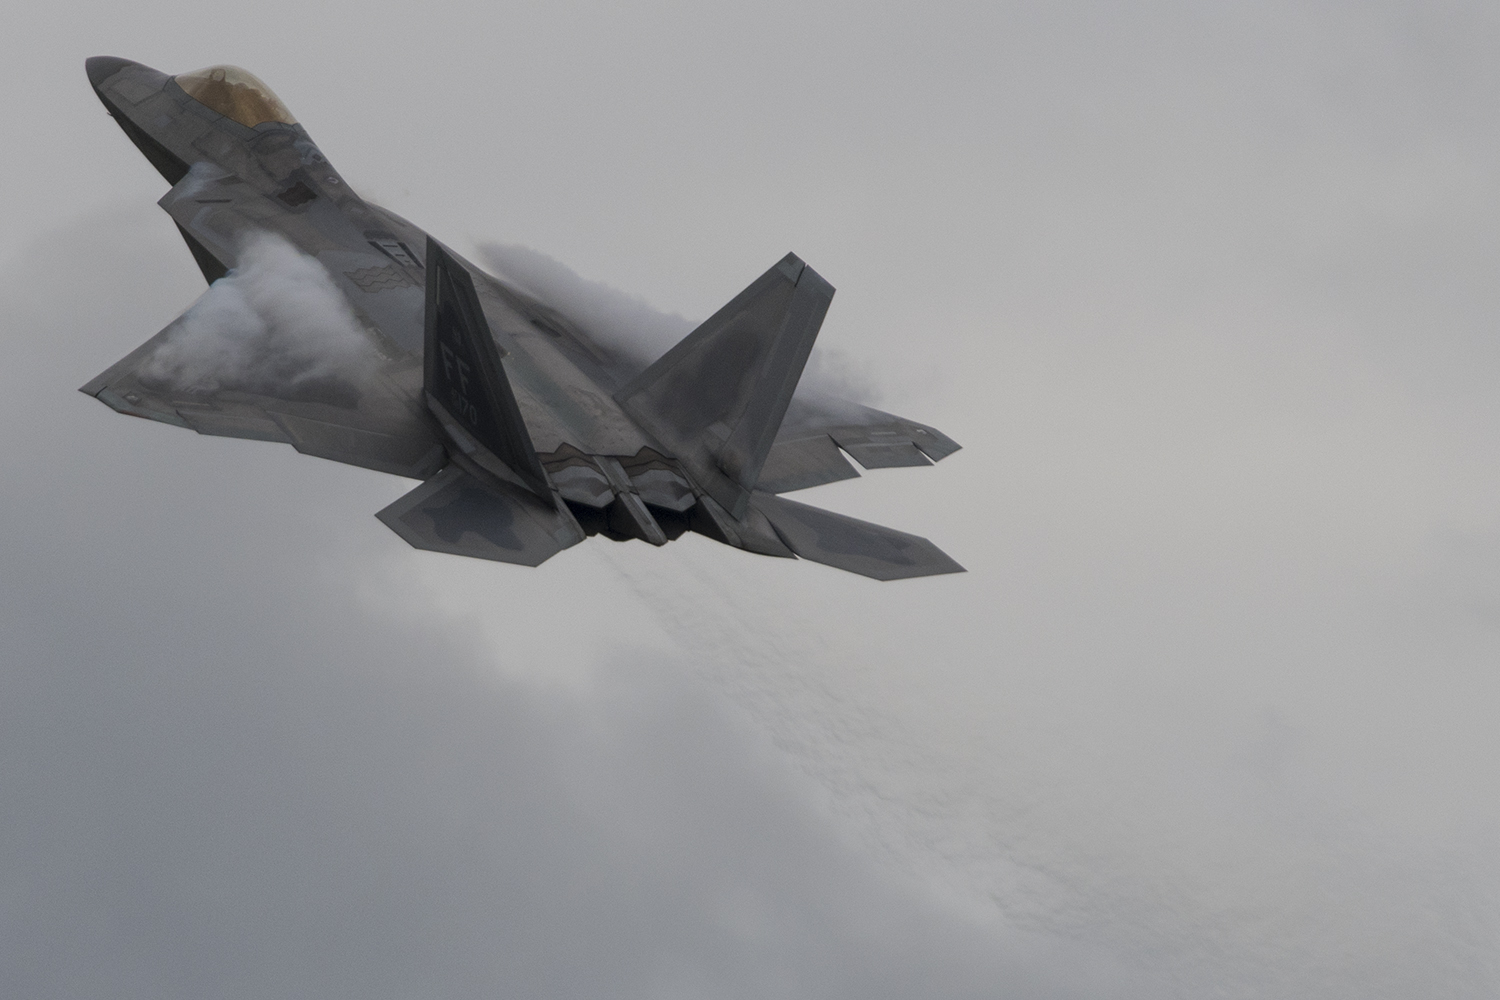 An F-22 arrives for static display